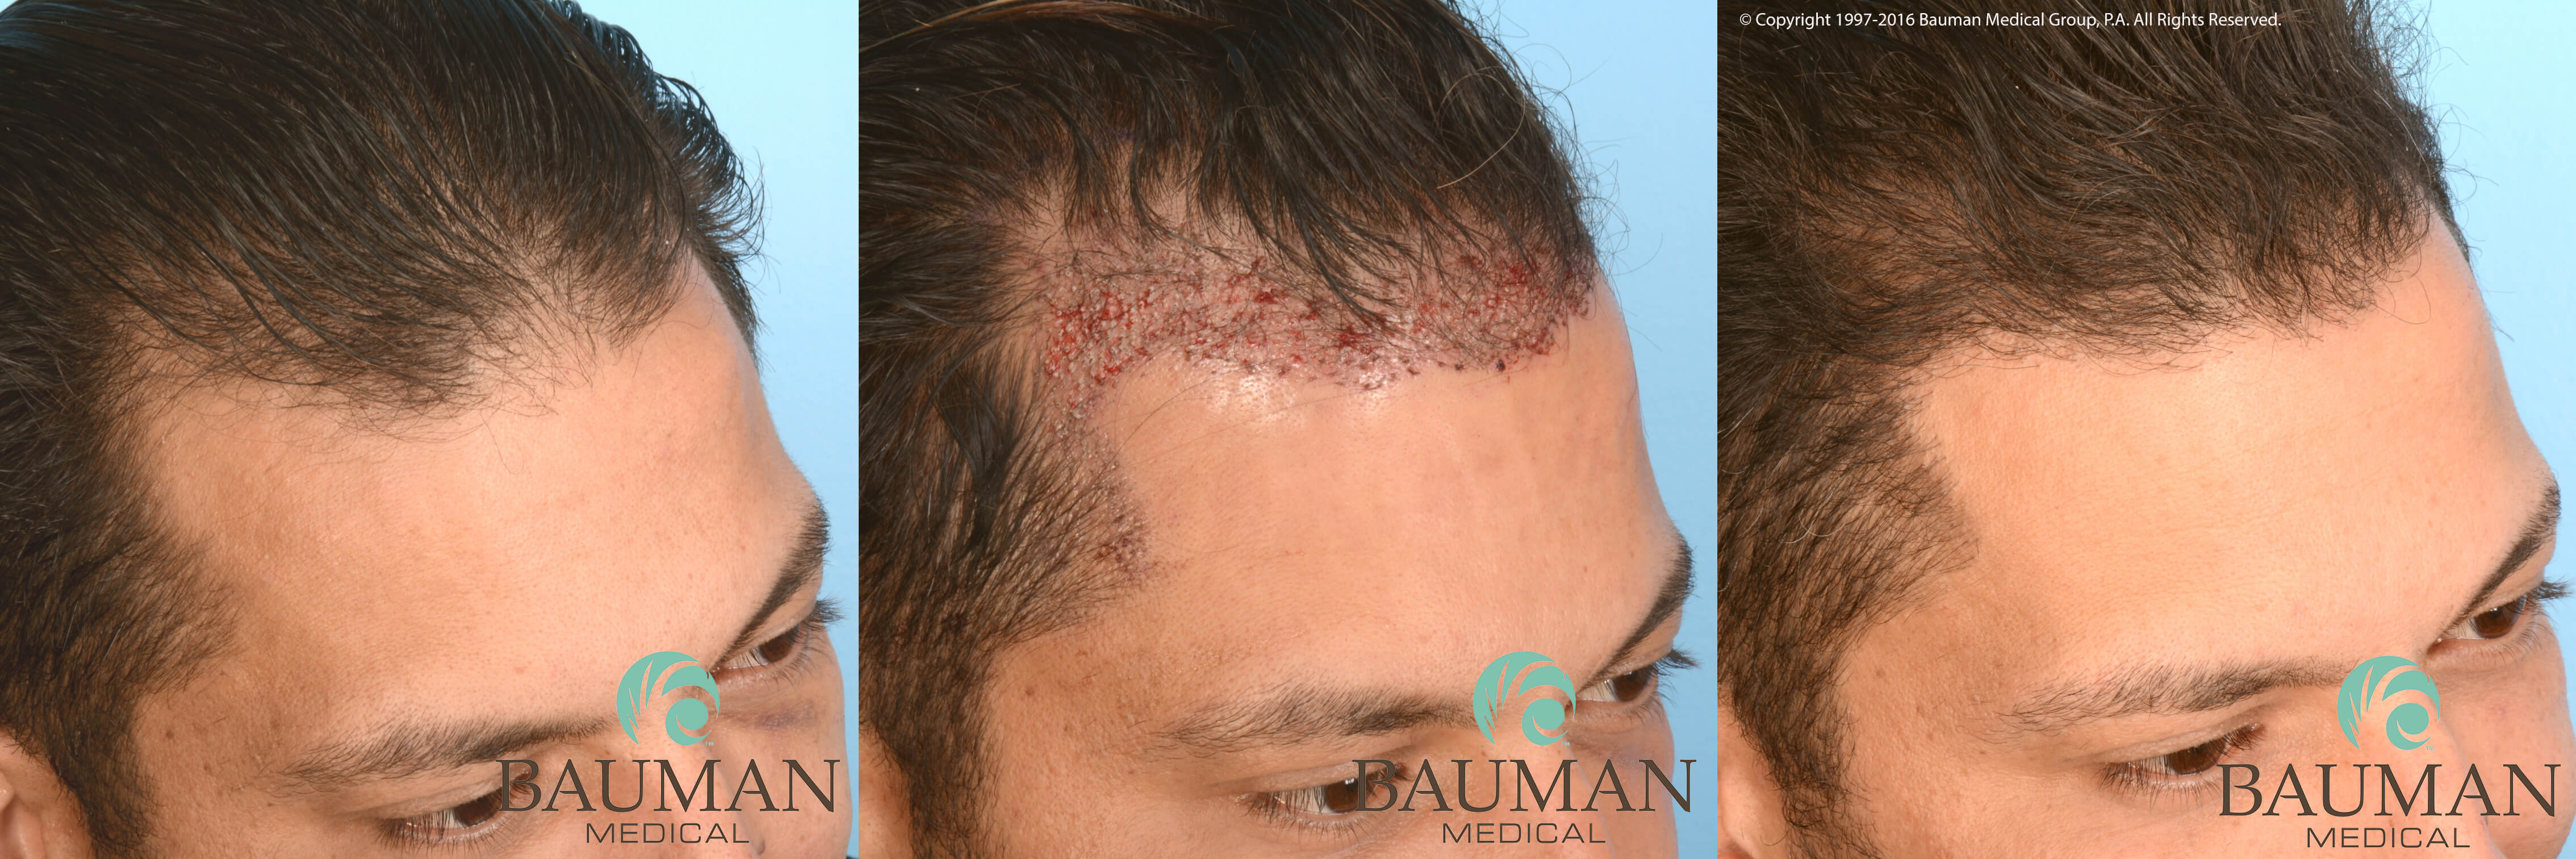 Cartier Martino before 24h 1yrpostop results hairline ARTICLE: An Undetectable Hair Transplant